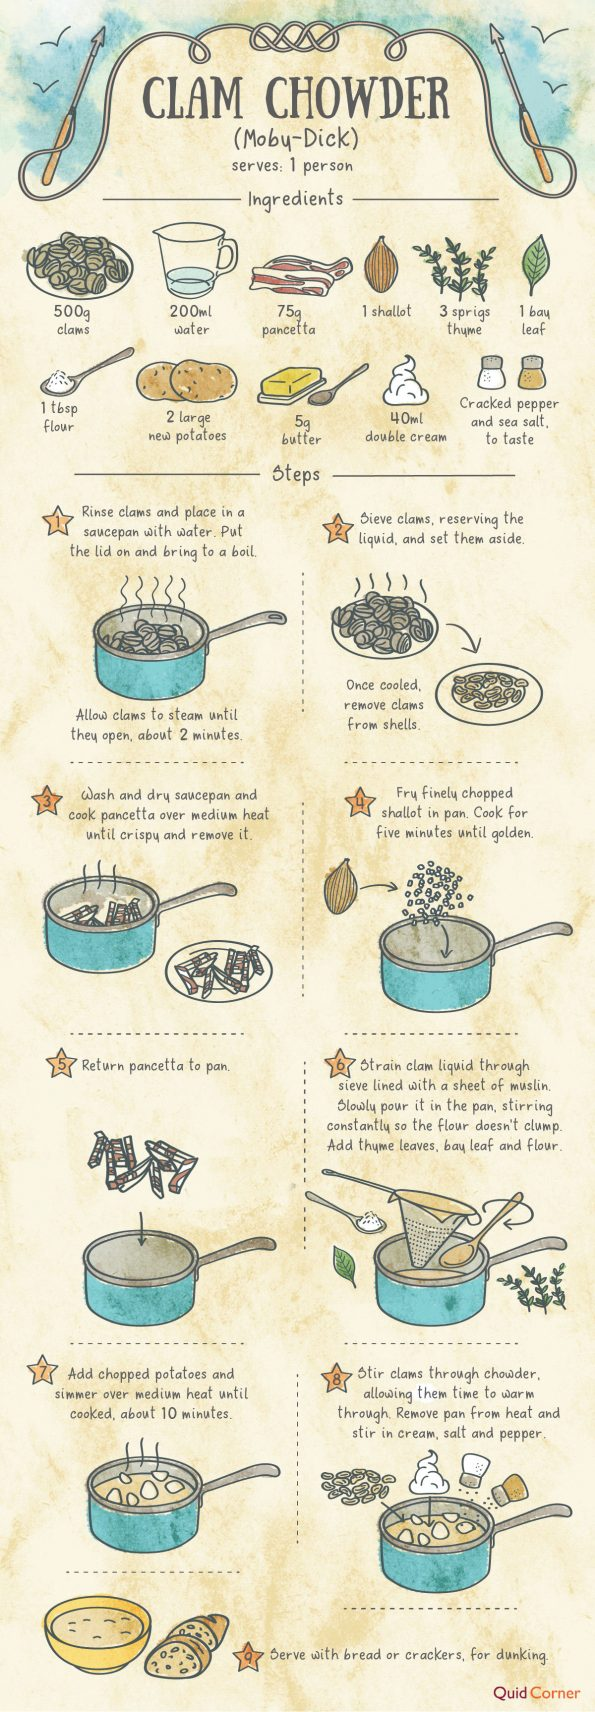 7 Dishes From Famous Books (And How to Make Them) from North Carolina Book Blogger Reading with Frugal Mom